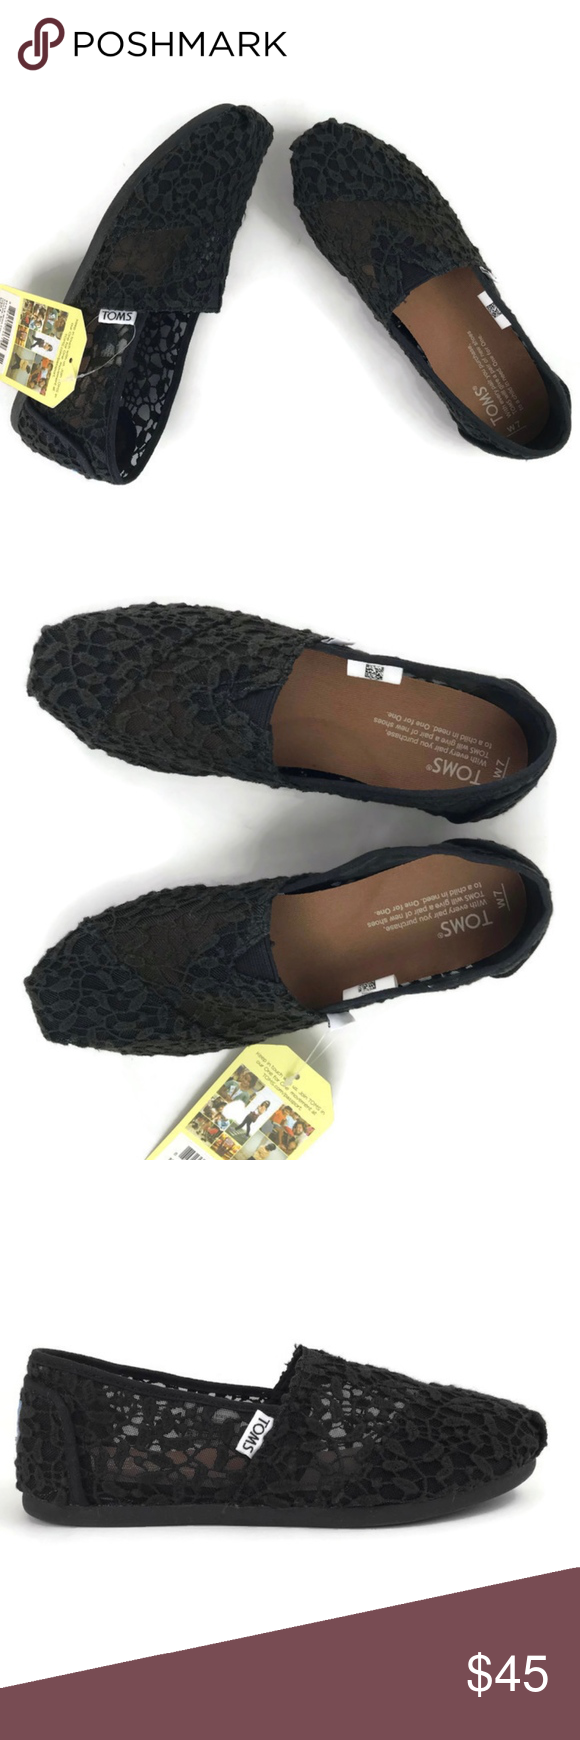 33b249d0bfce Toms Classic Shoes Black Lace Leaves Toms Classic Shoes Black Lace Leaves  Size 7 Women s NWT